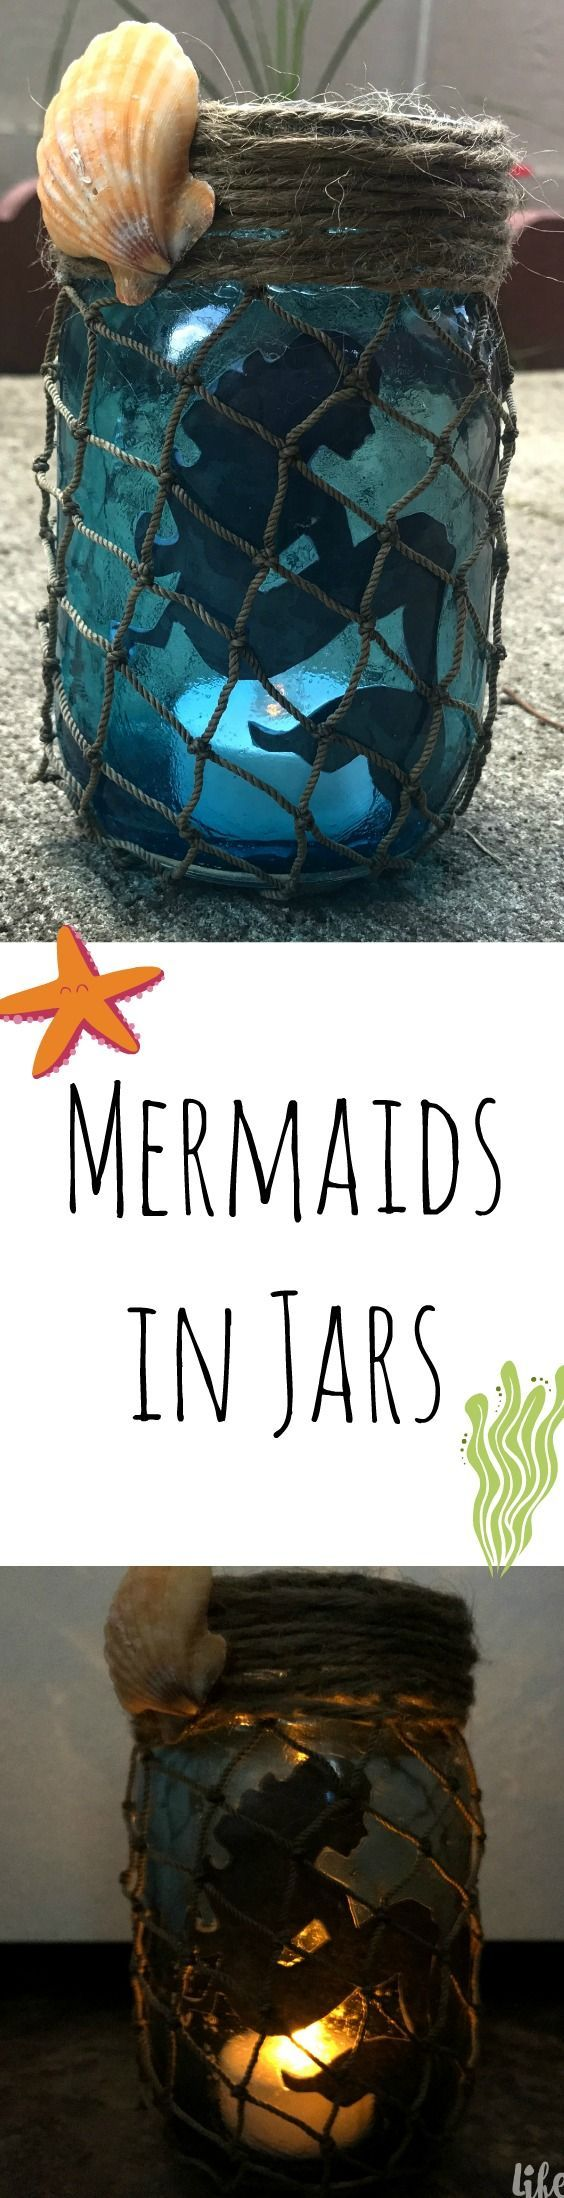 Don't throw away those empty jars until you see this magical idea! These mermaids in a jar are the perfect way to light up the night. Read more at http://lifeispoppin.com/mermaids-in-a-jar-a-magical-creation/